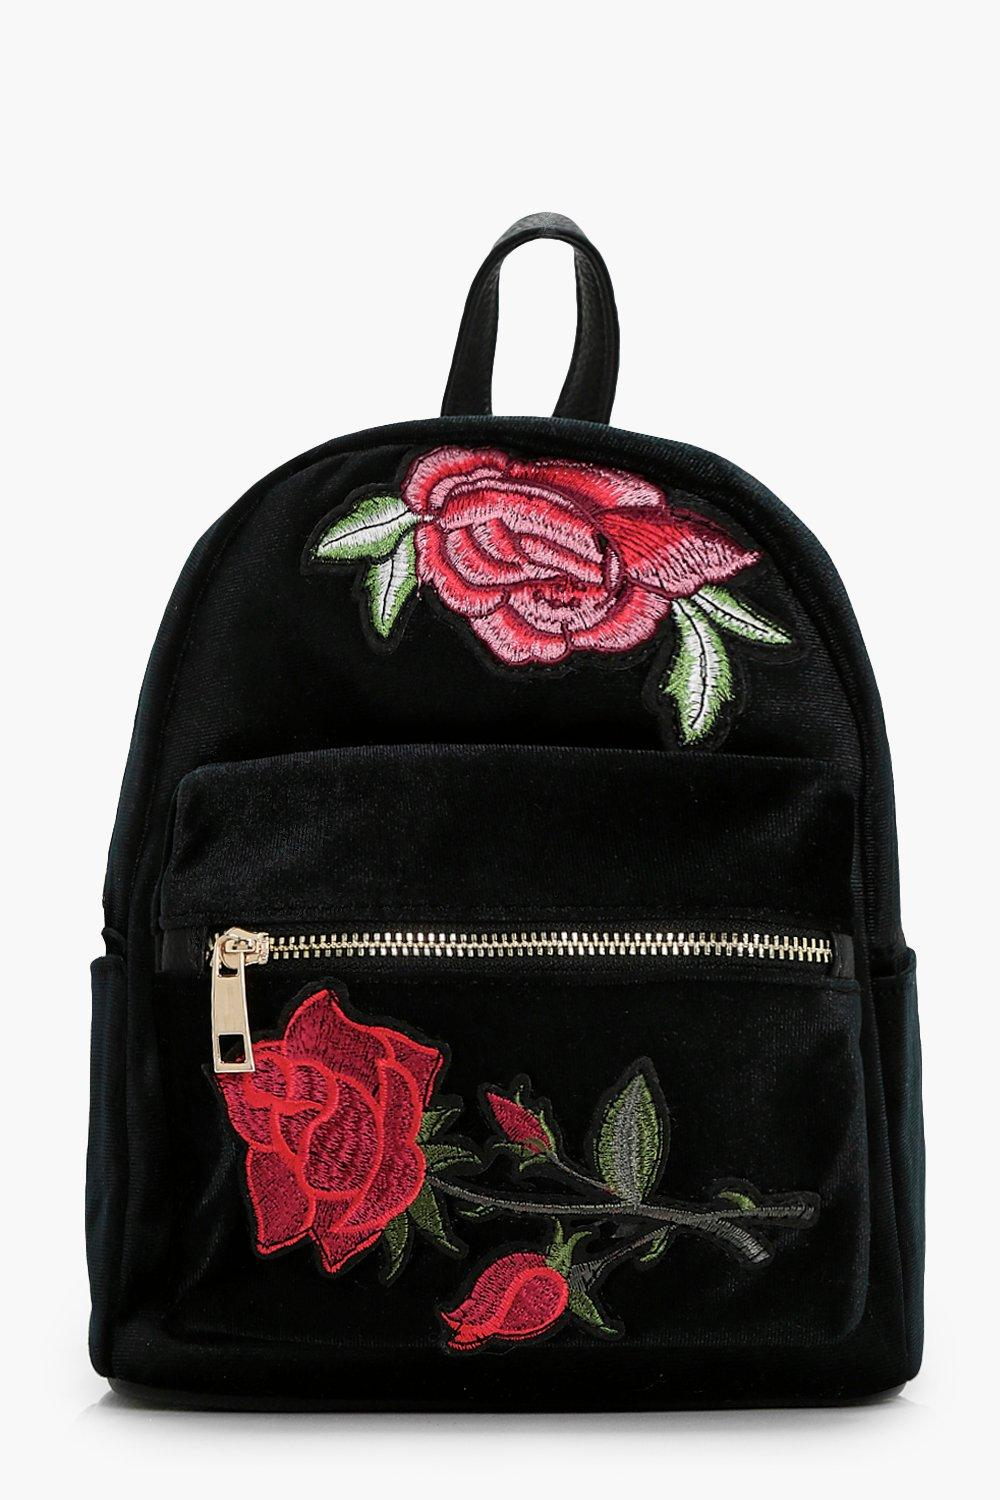 Embroidered Mini Rucksack - black - Natalie Embroi